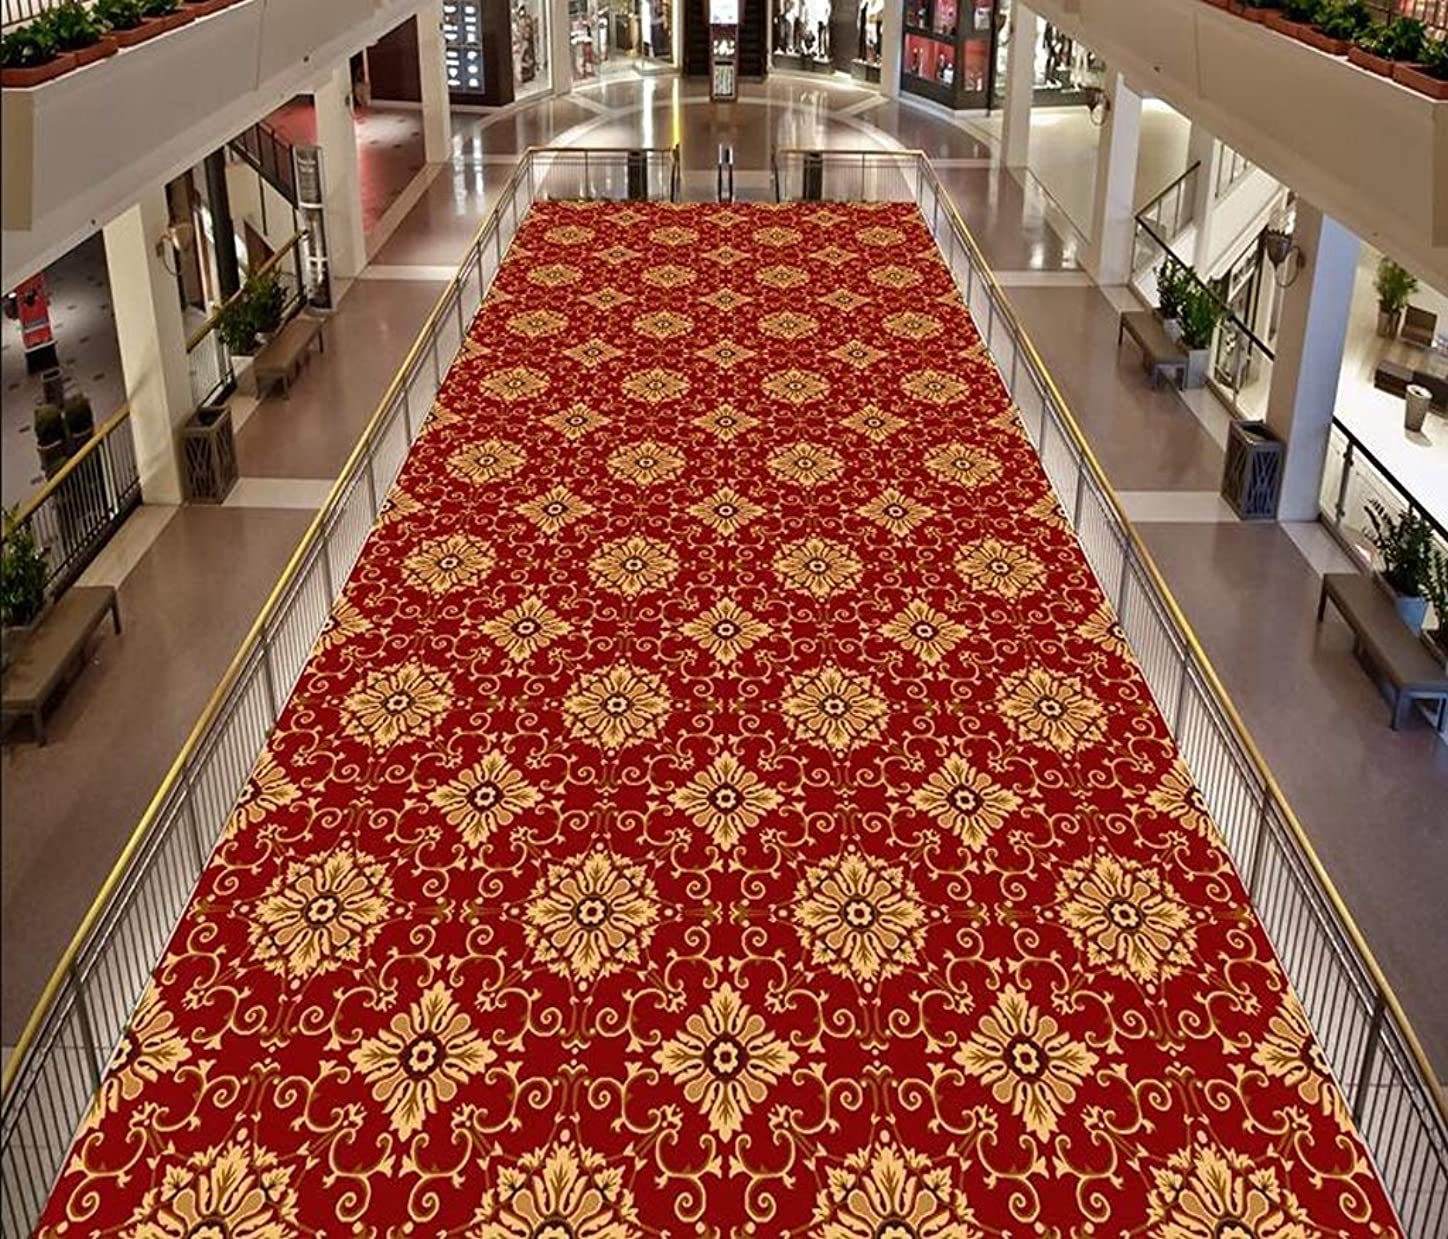 Mbd Corridor Carpet Non-Slip Absorbent 3D Running Carpet, Stair Kitchen and Entrance Soft, Absorbent Custom (Color : D, Size : 1.62.5m) ogqyjtx373360